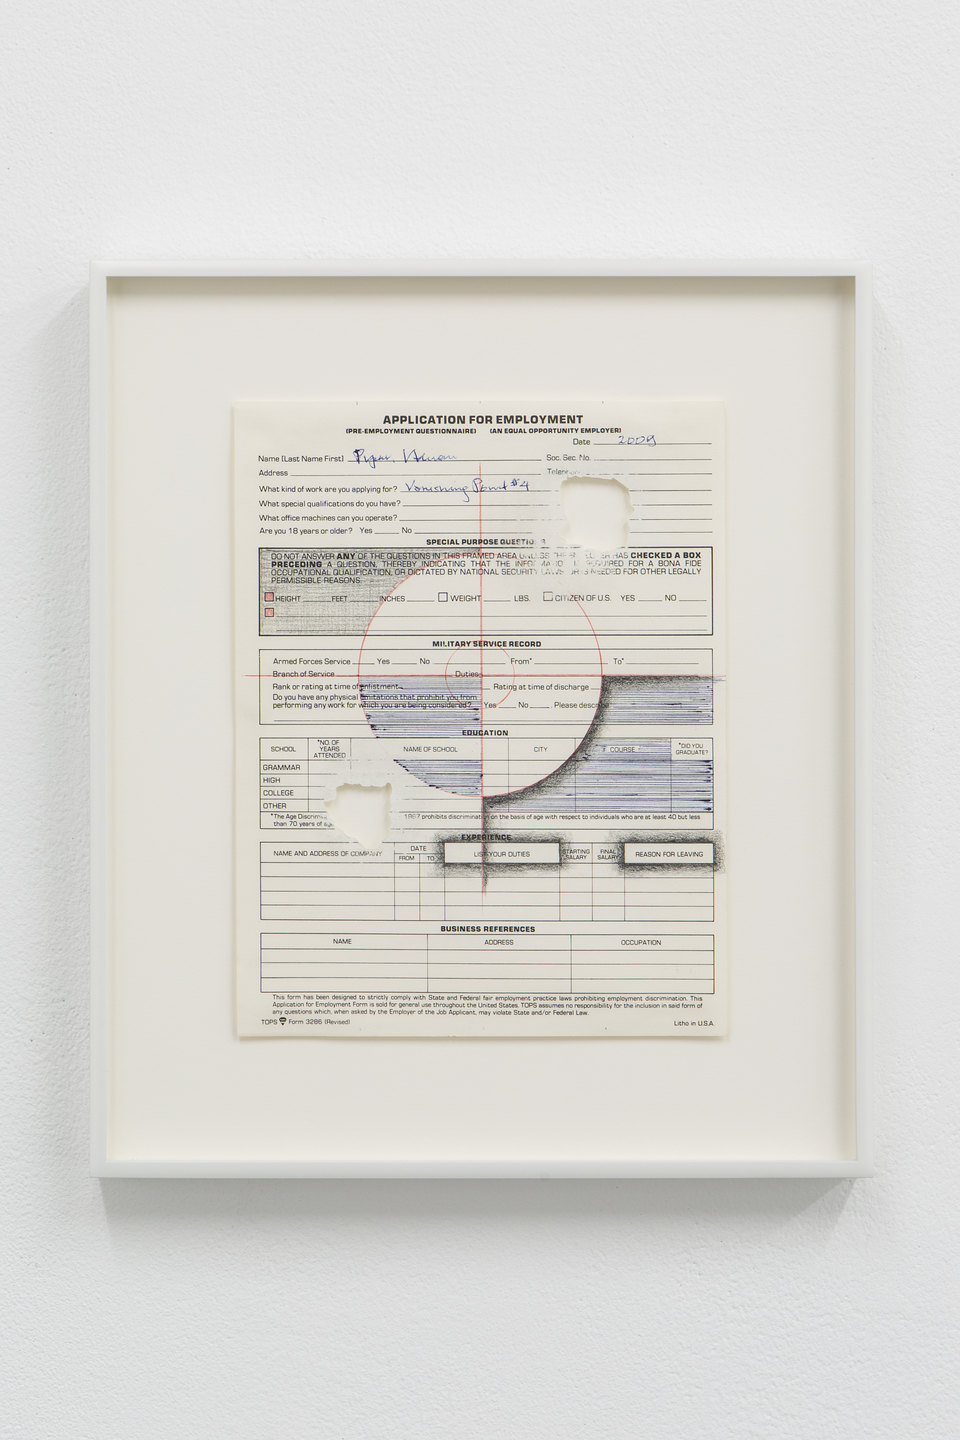 Adrian Piper, 'Vanishing Point #4', 2009, Black and red graphite pencil, blue graphite pencil on application for employment form, sanded with sandpaper, 27.9 x 21.6cm, Civic Duty, 2019, Cell Project Space